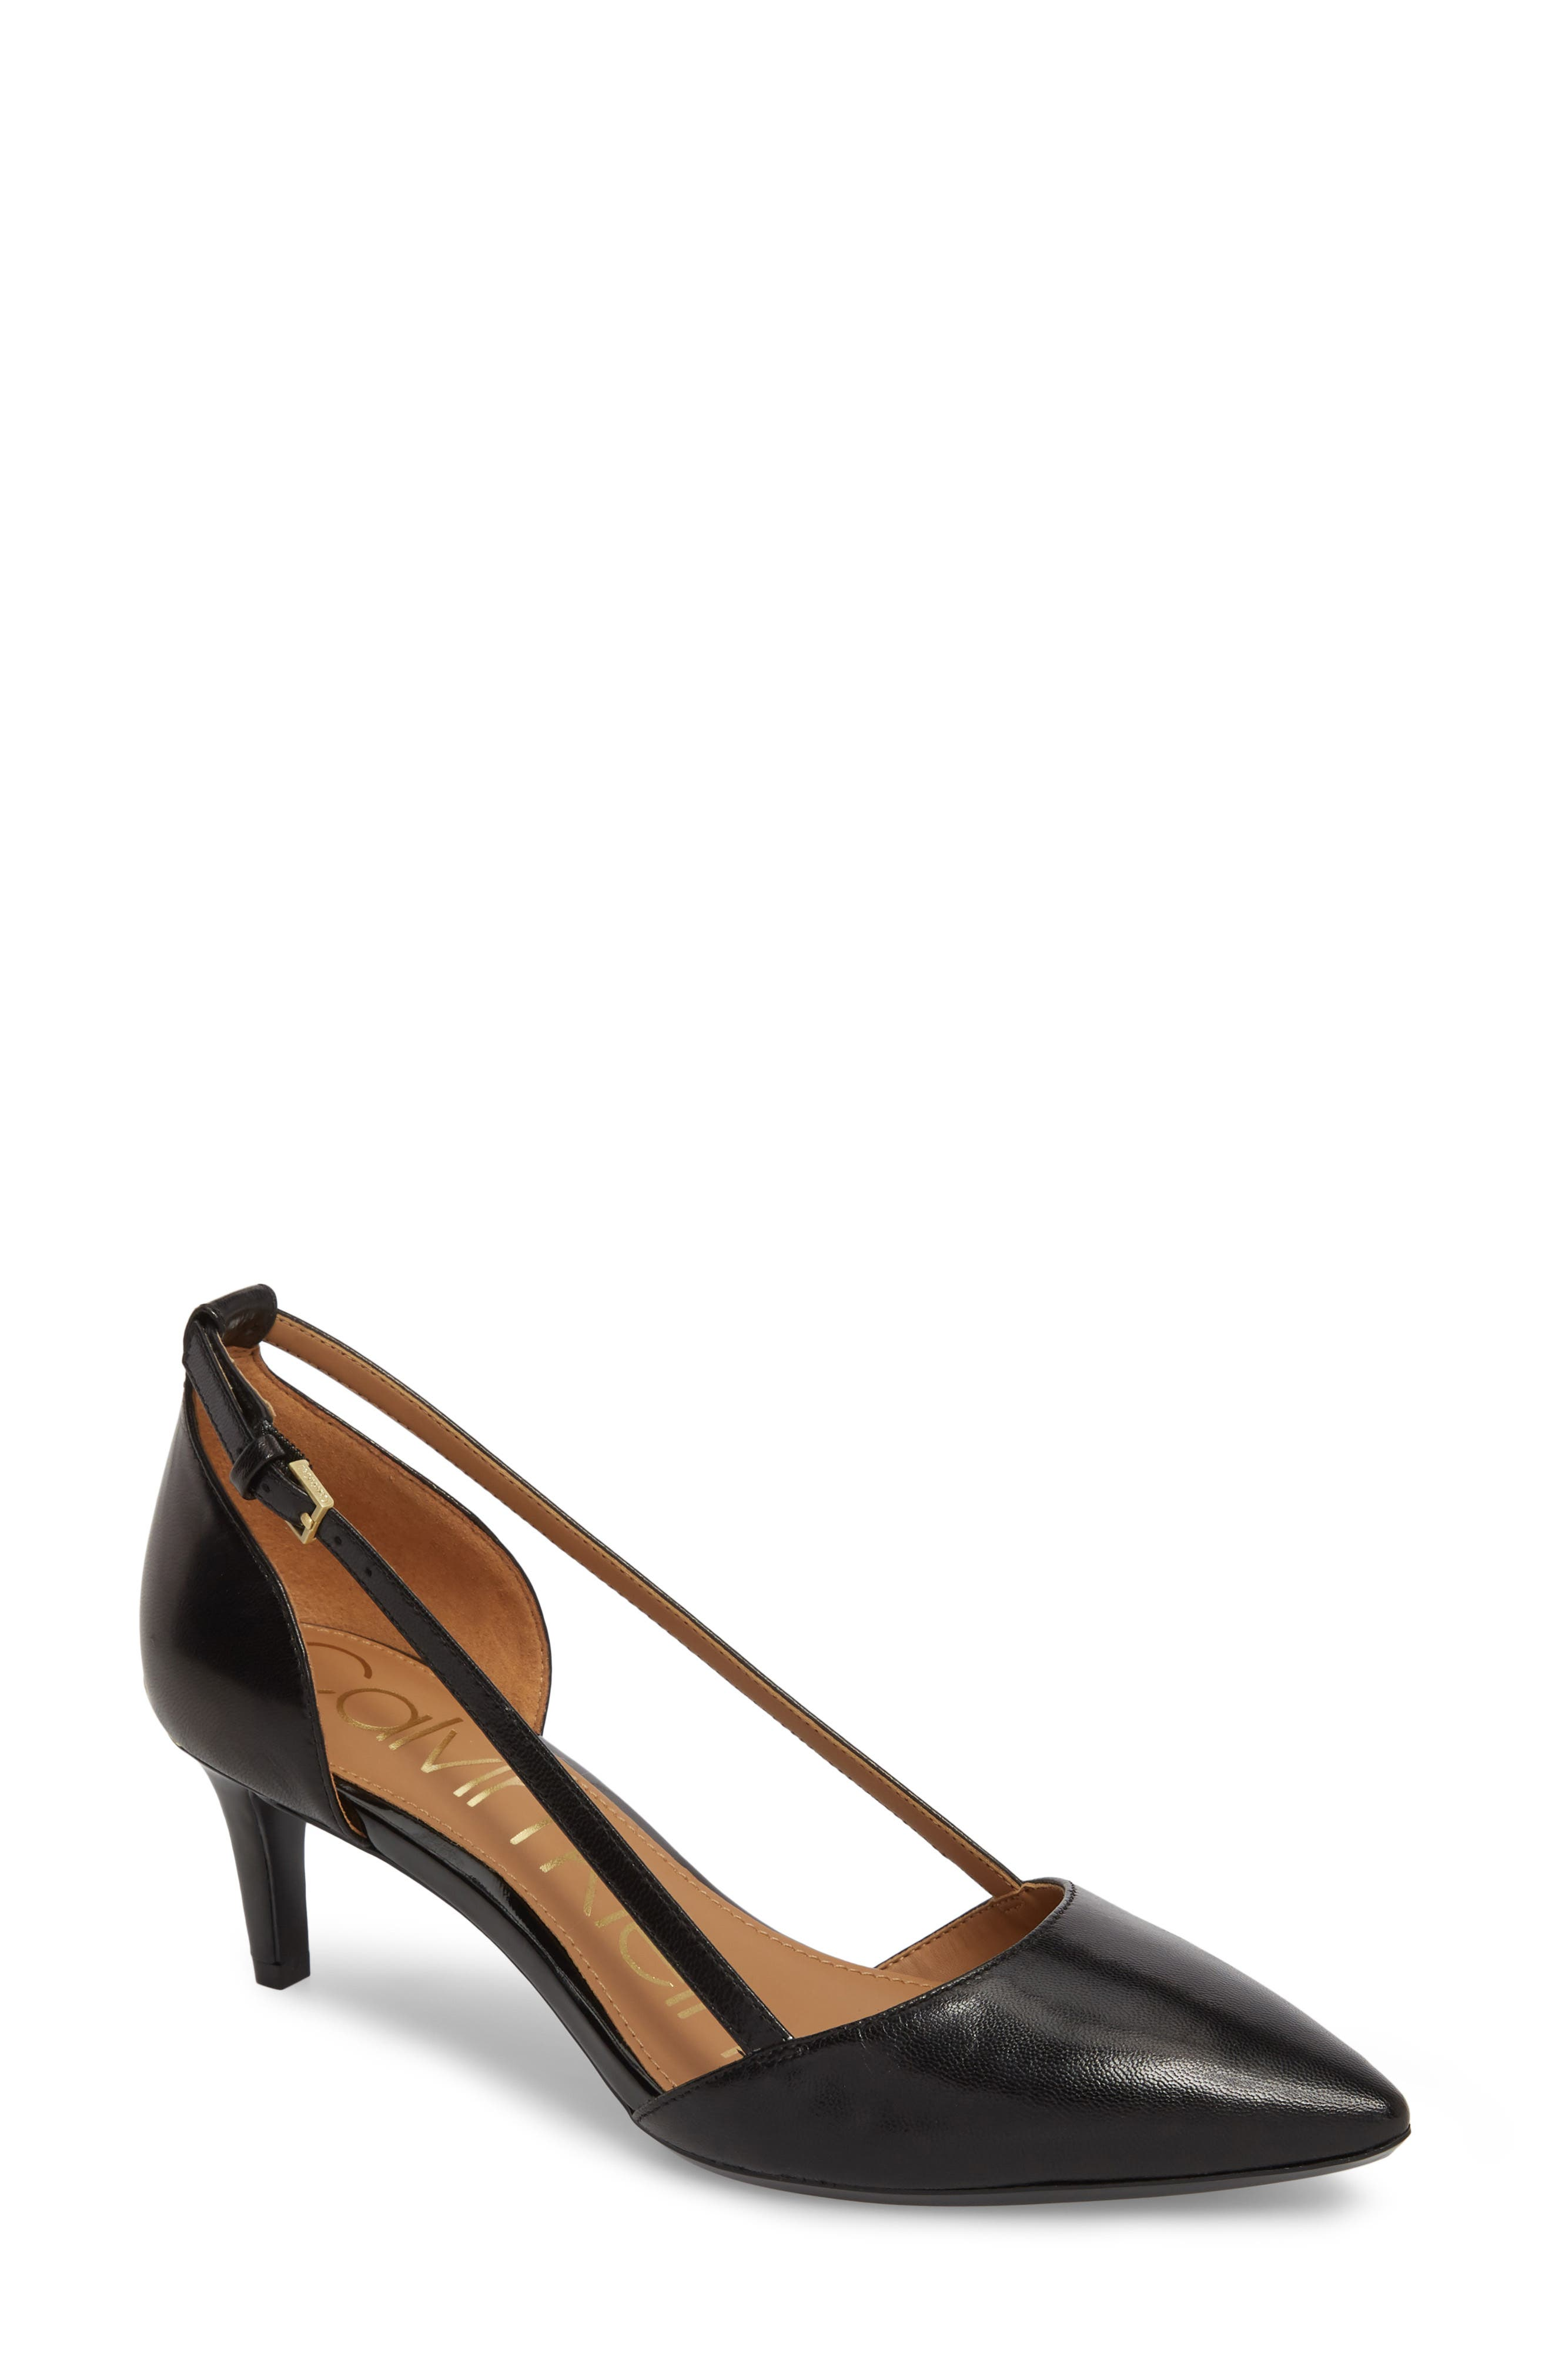 CALVIN KLEIN Pashka Strappy Open Sided Pump, Main, color, 001